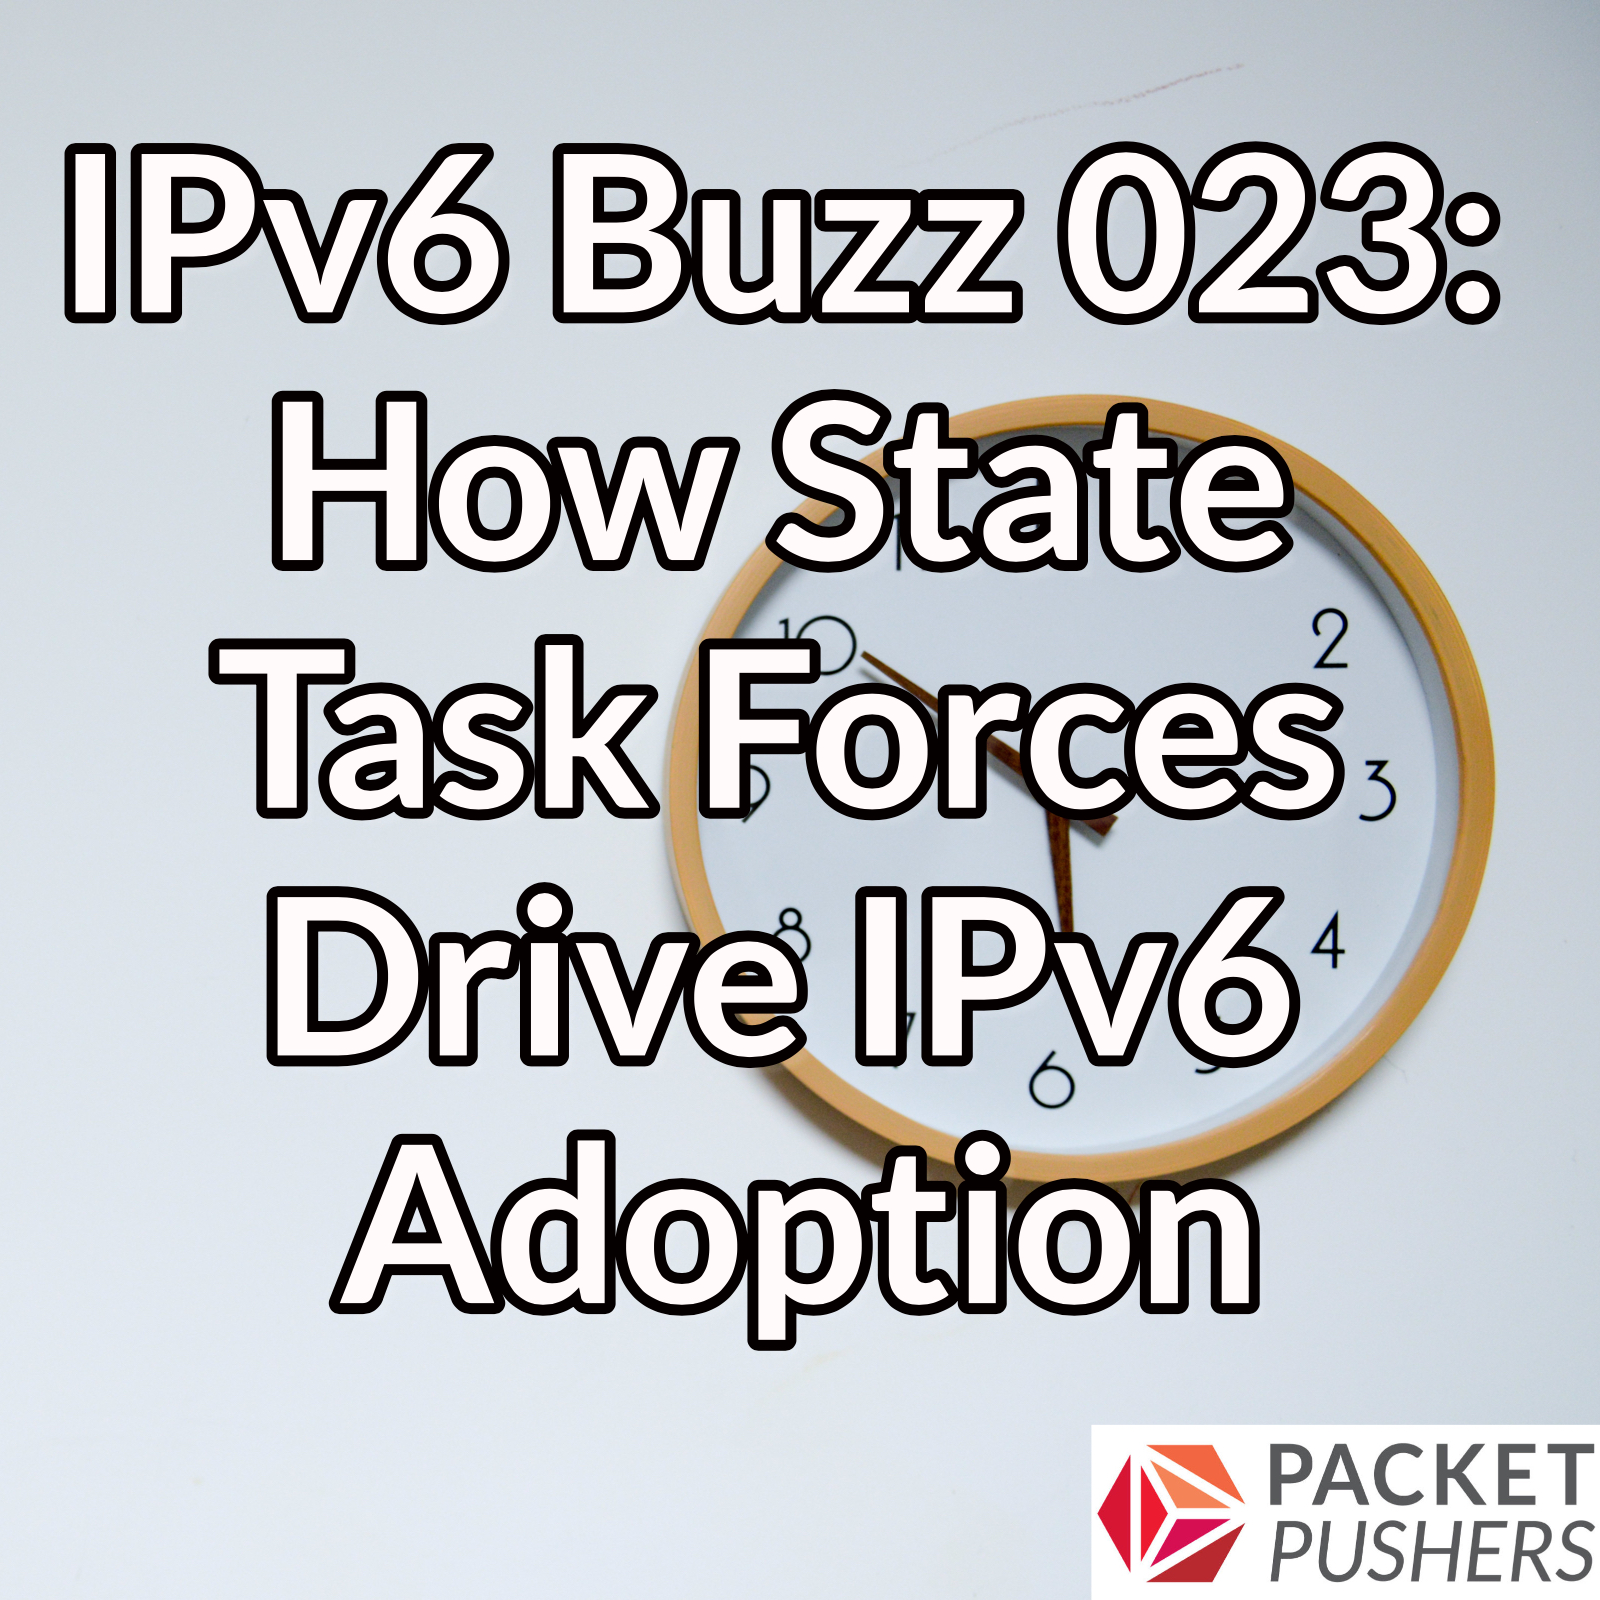 How State Task Forces Drive IPv6 Adoption